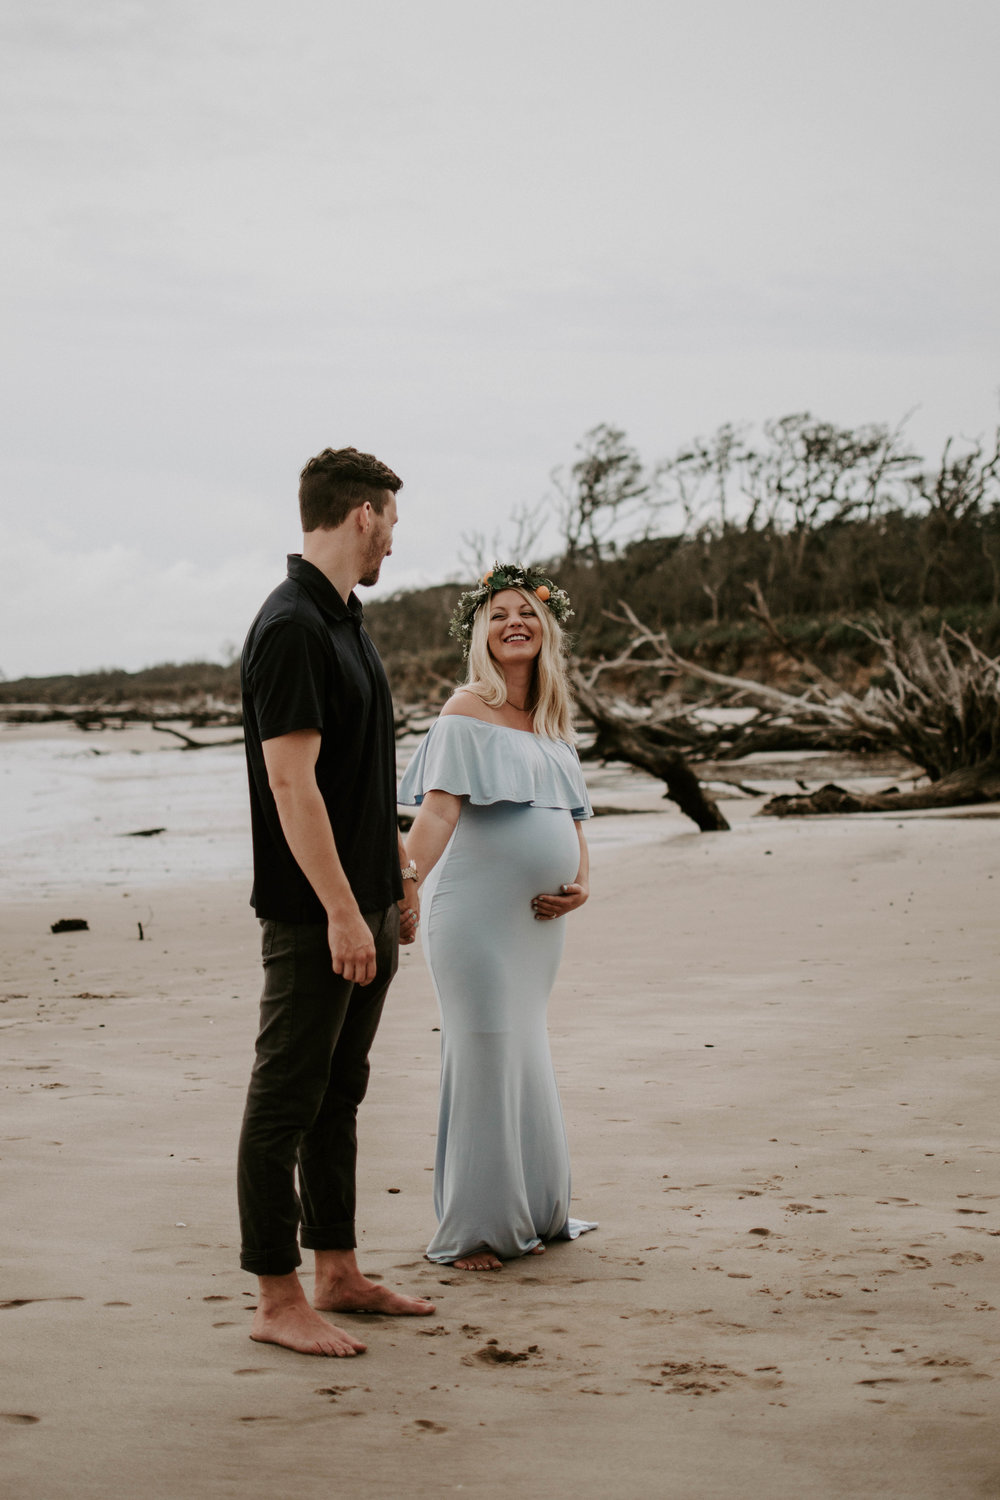 Michael + Courtney Maternity | Jacksonville, Florida